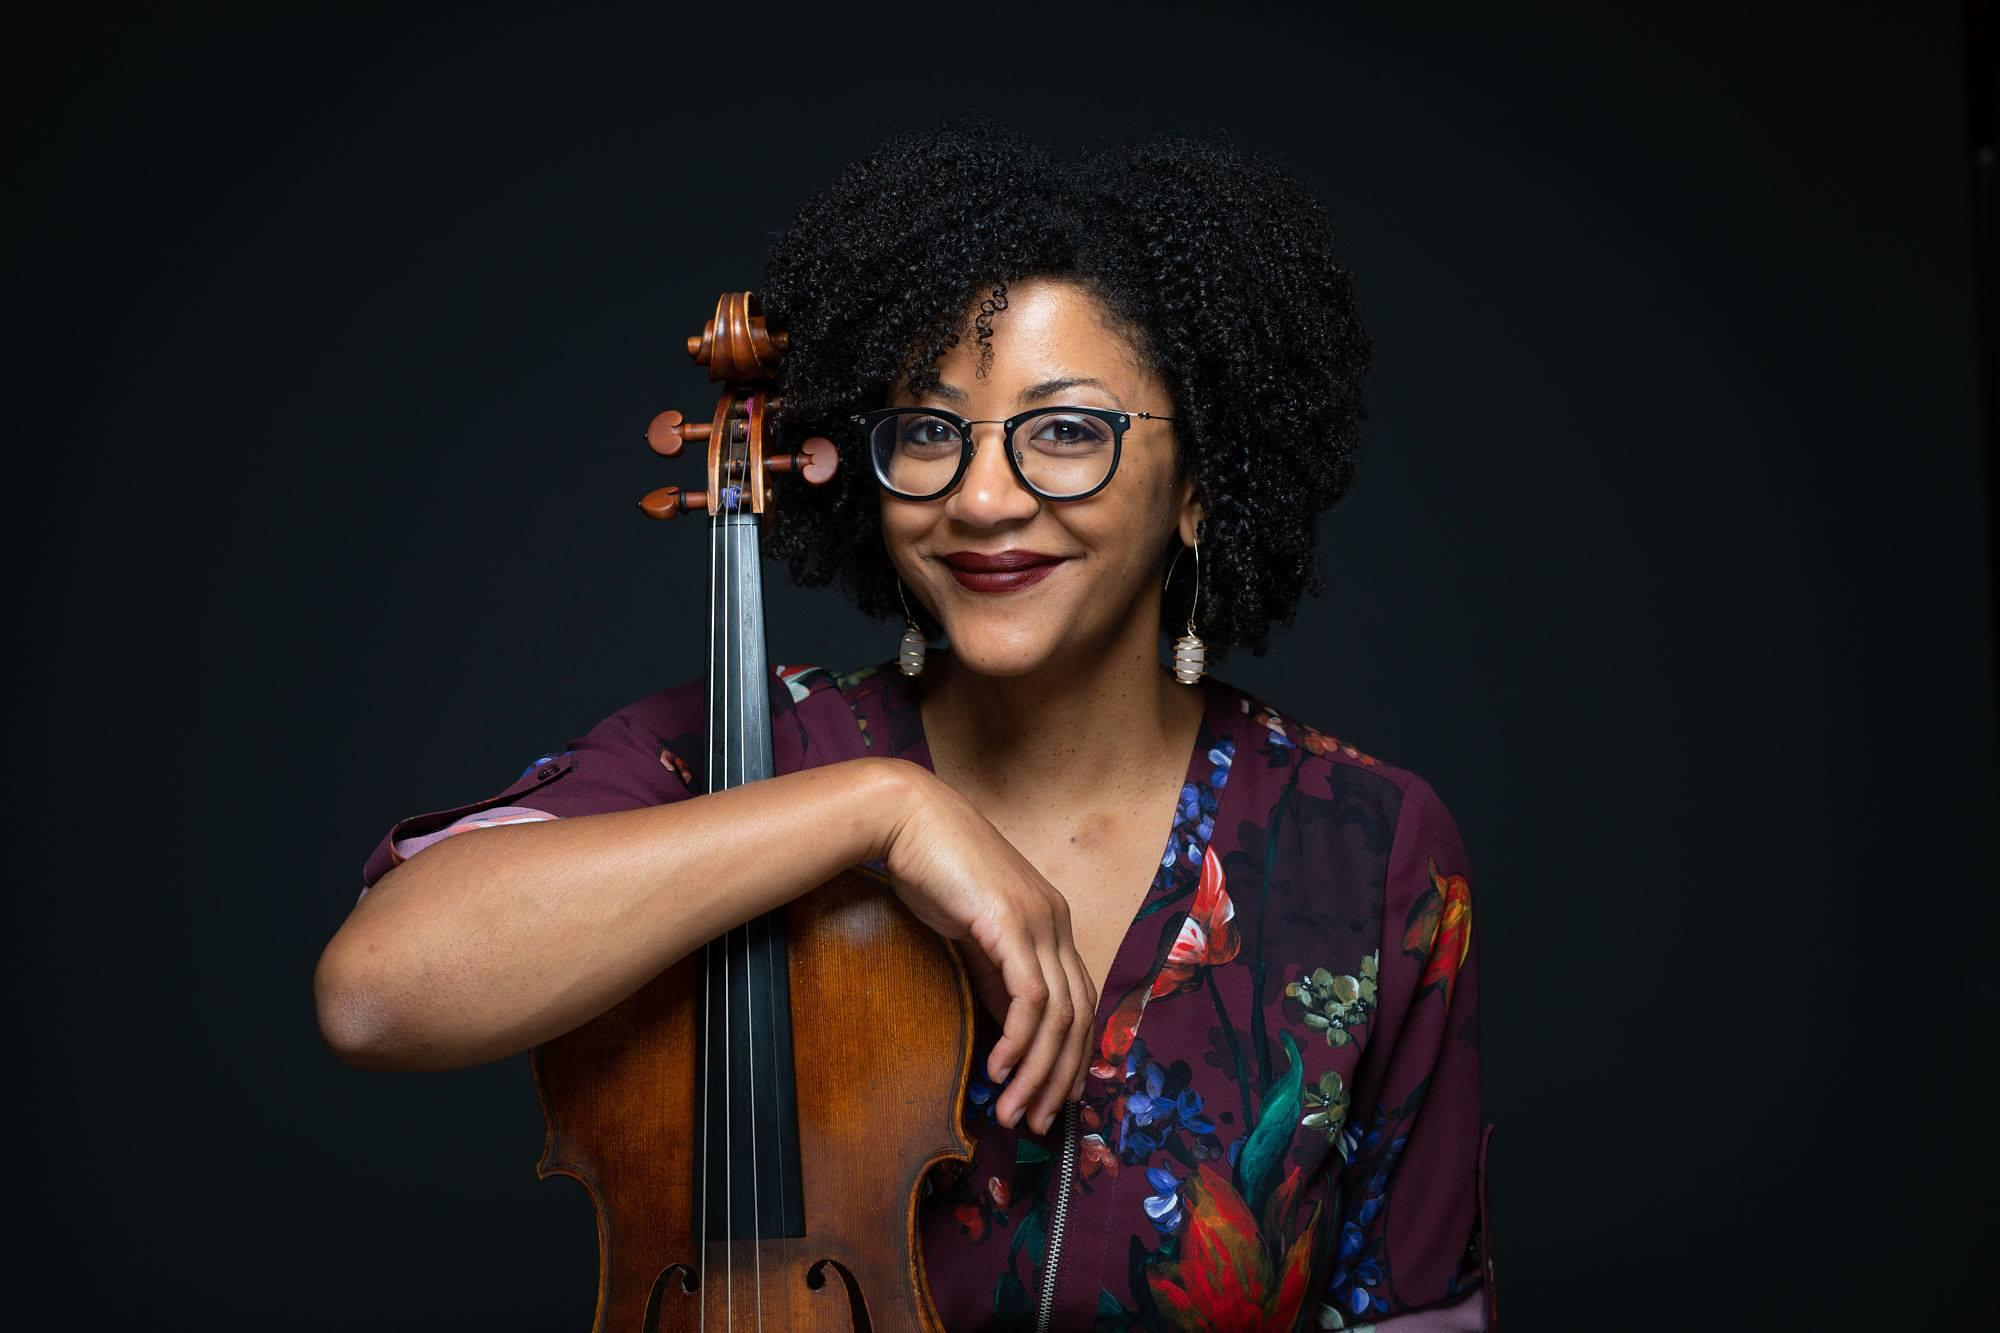 Ashleigh Gordon, Artistic/Executive Director and Violist of Castle of our Skins